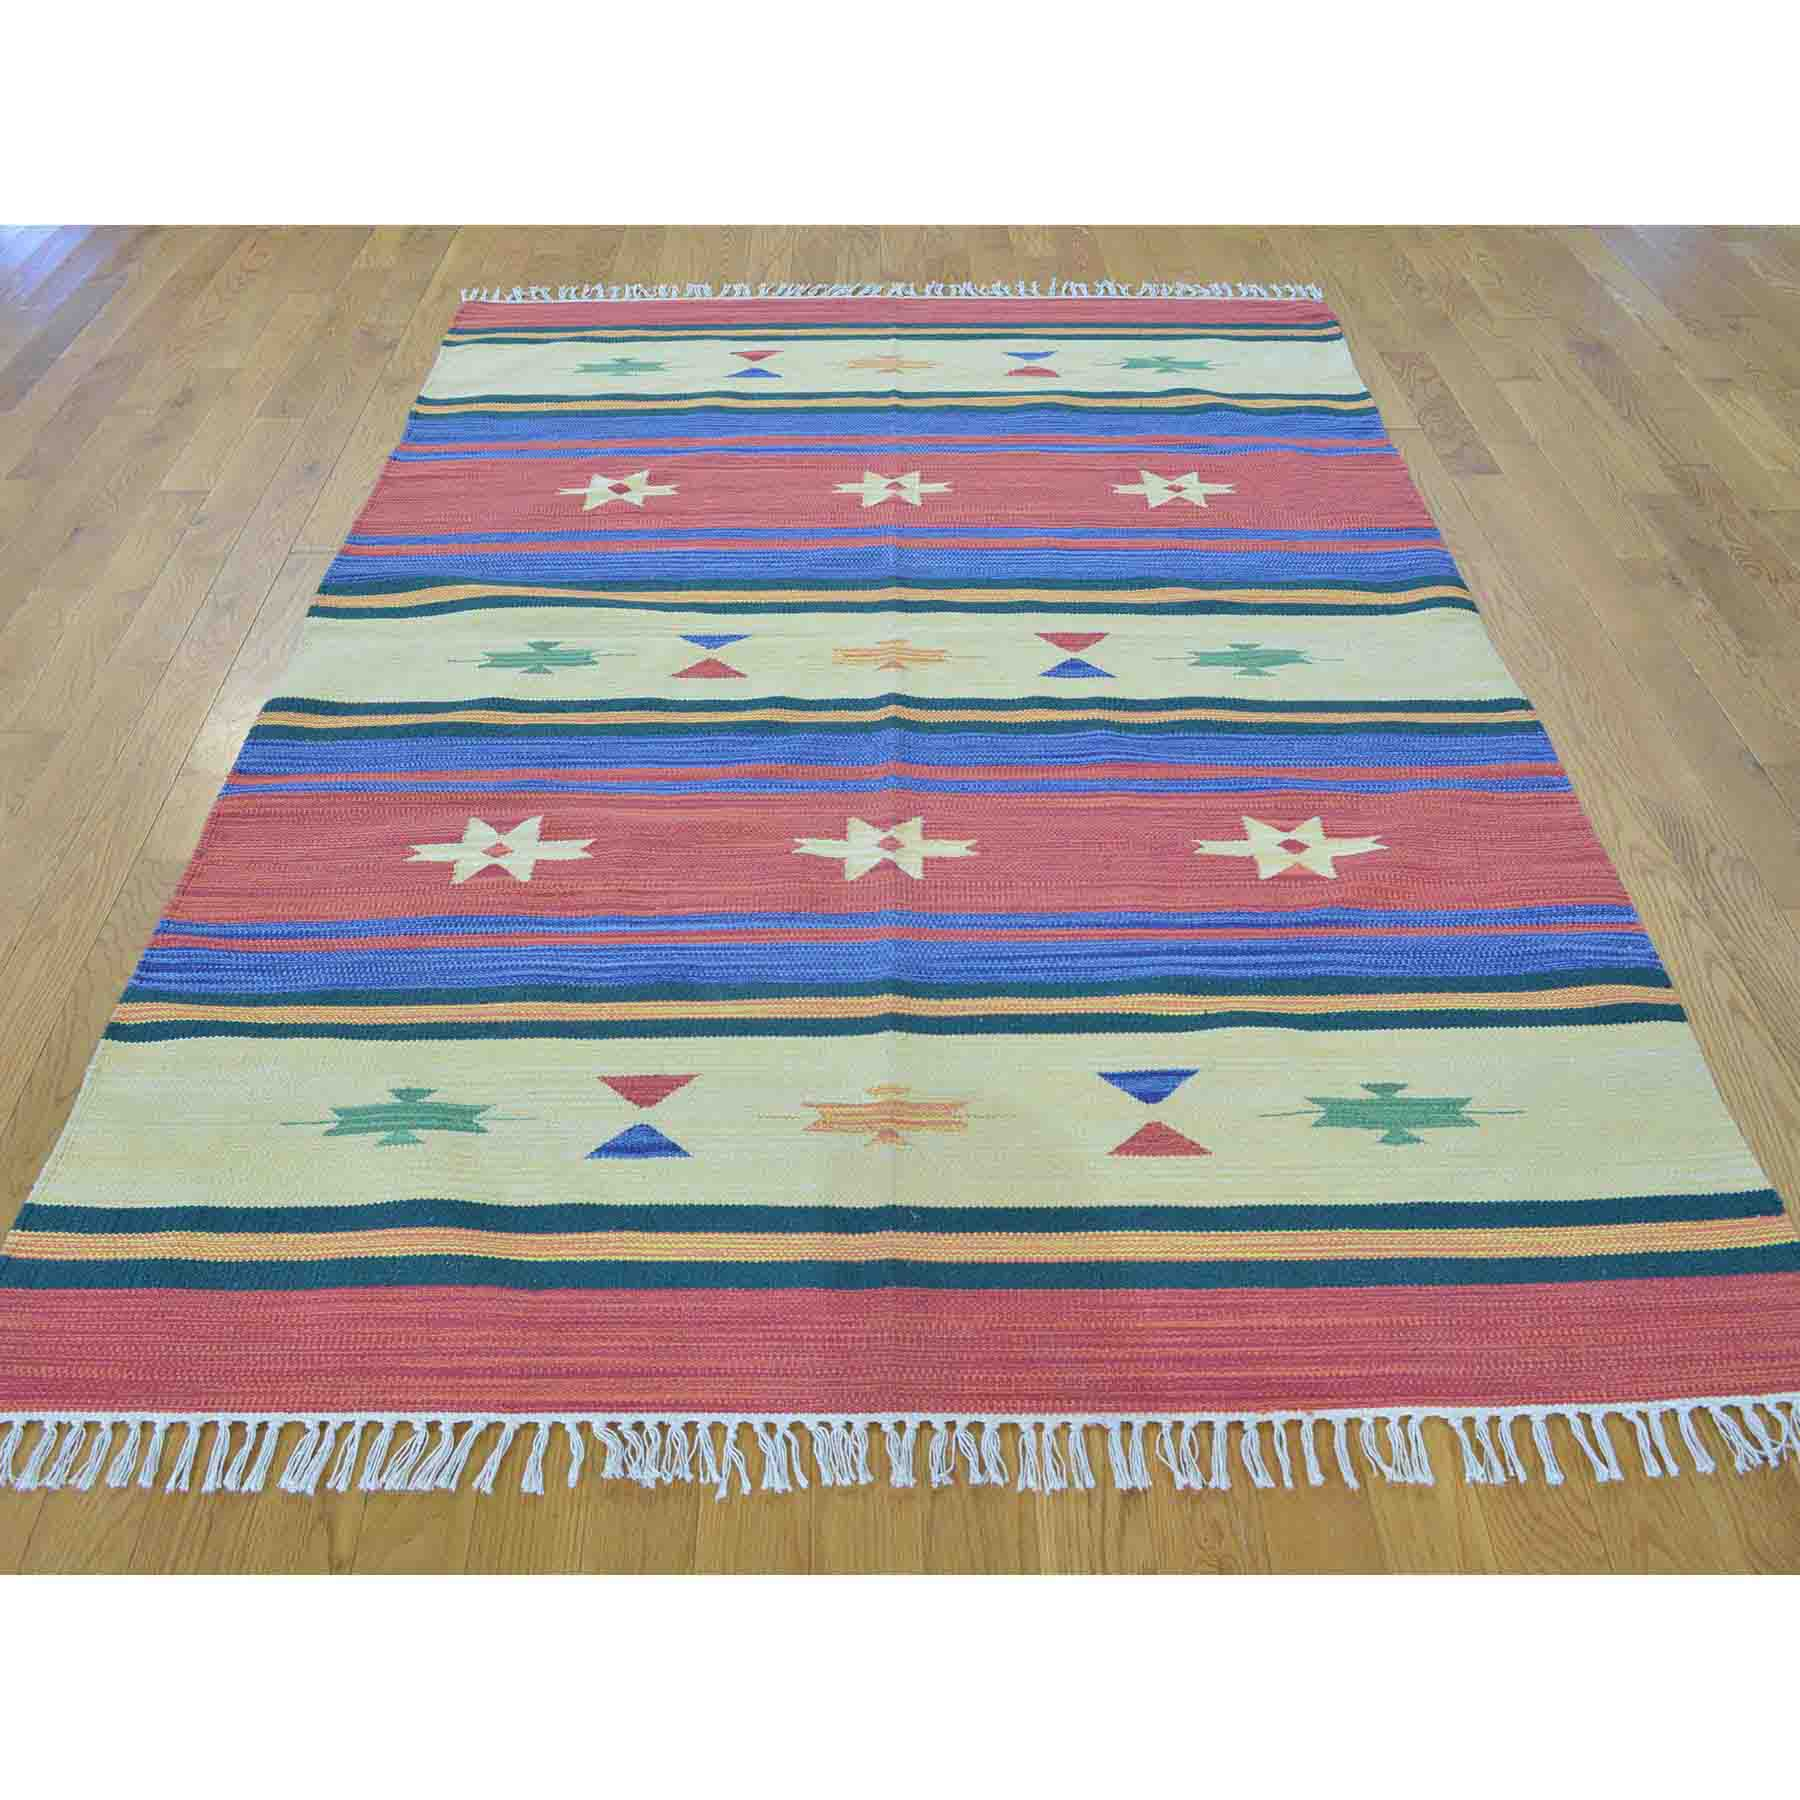 Flat-Weave-Hand-Woven-Rug-130625